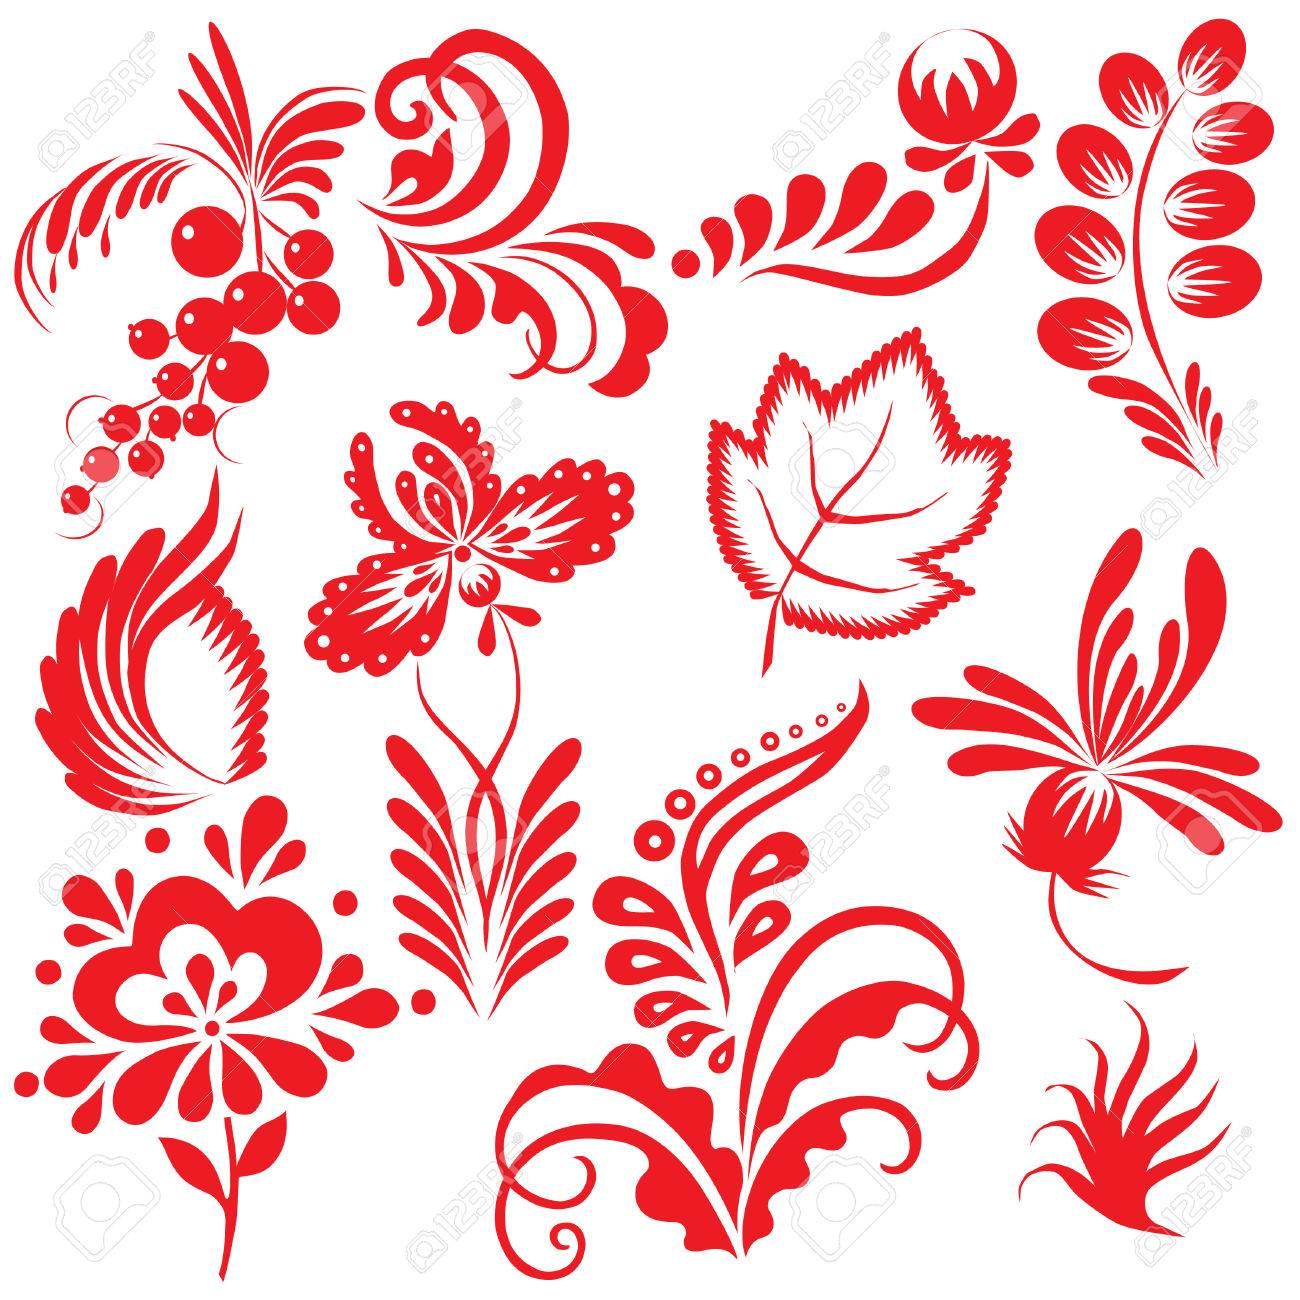 Floral collection. Vector art-illustration on a white background. Stock Vector - 7869560